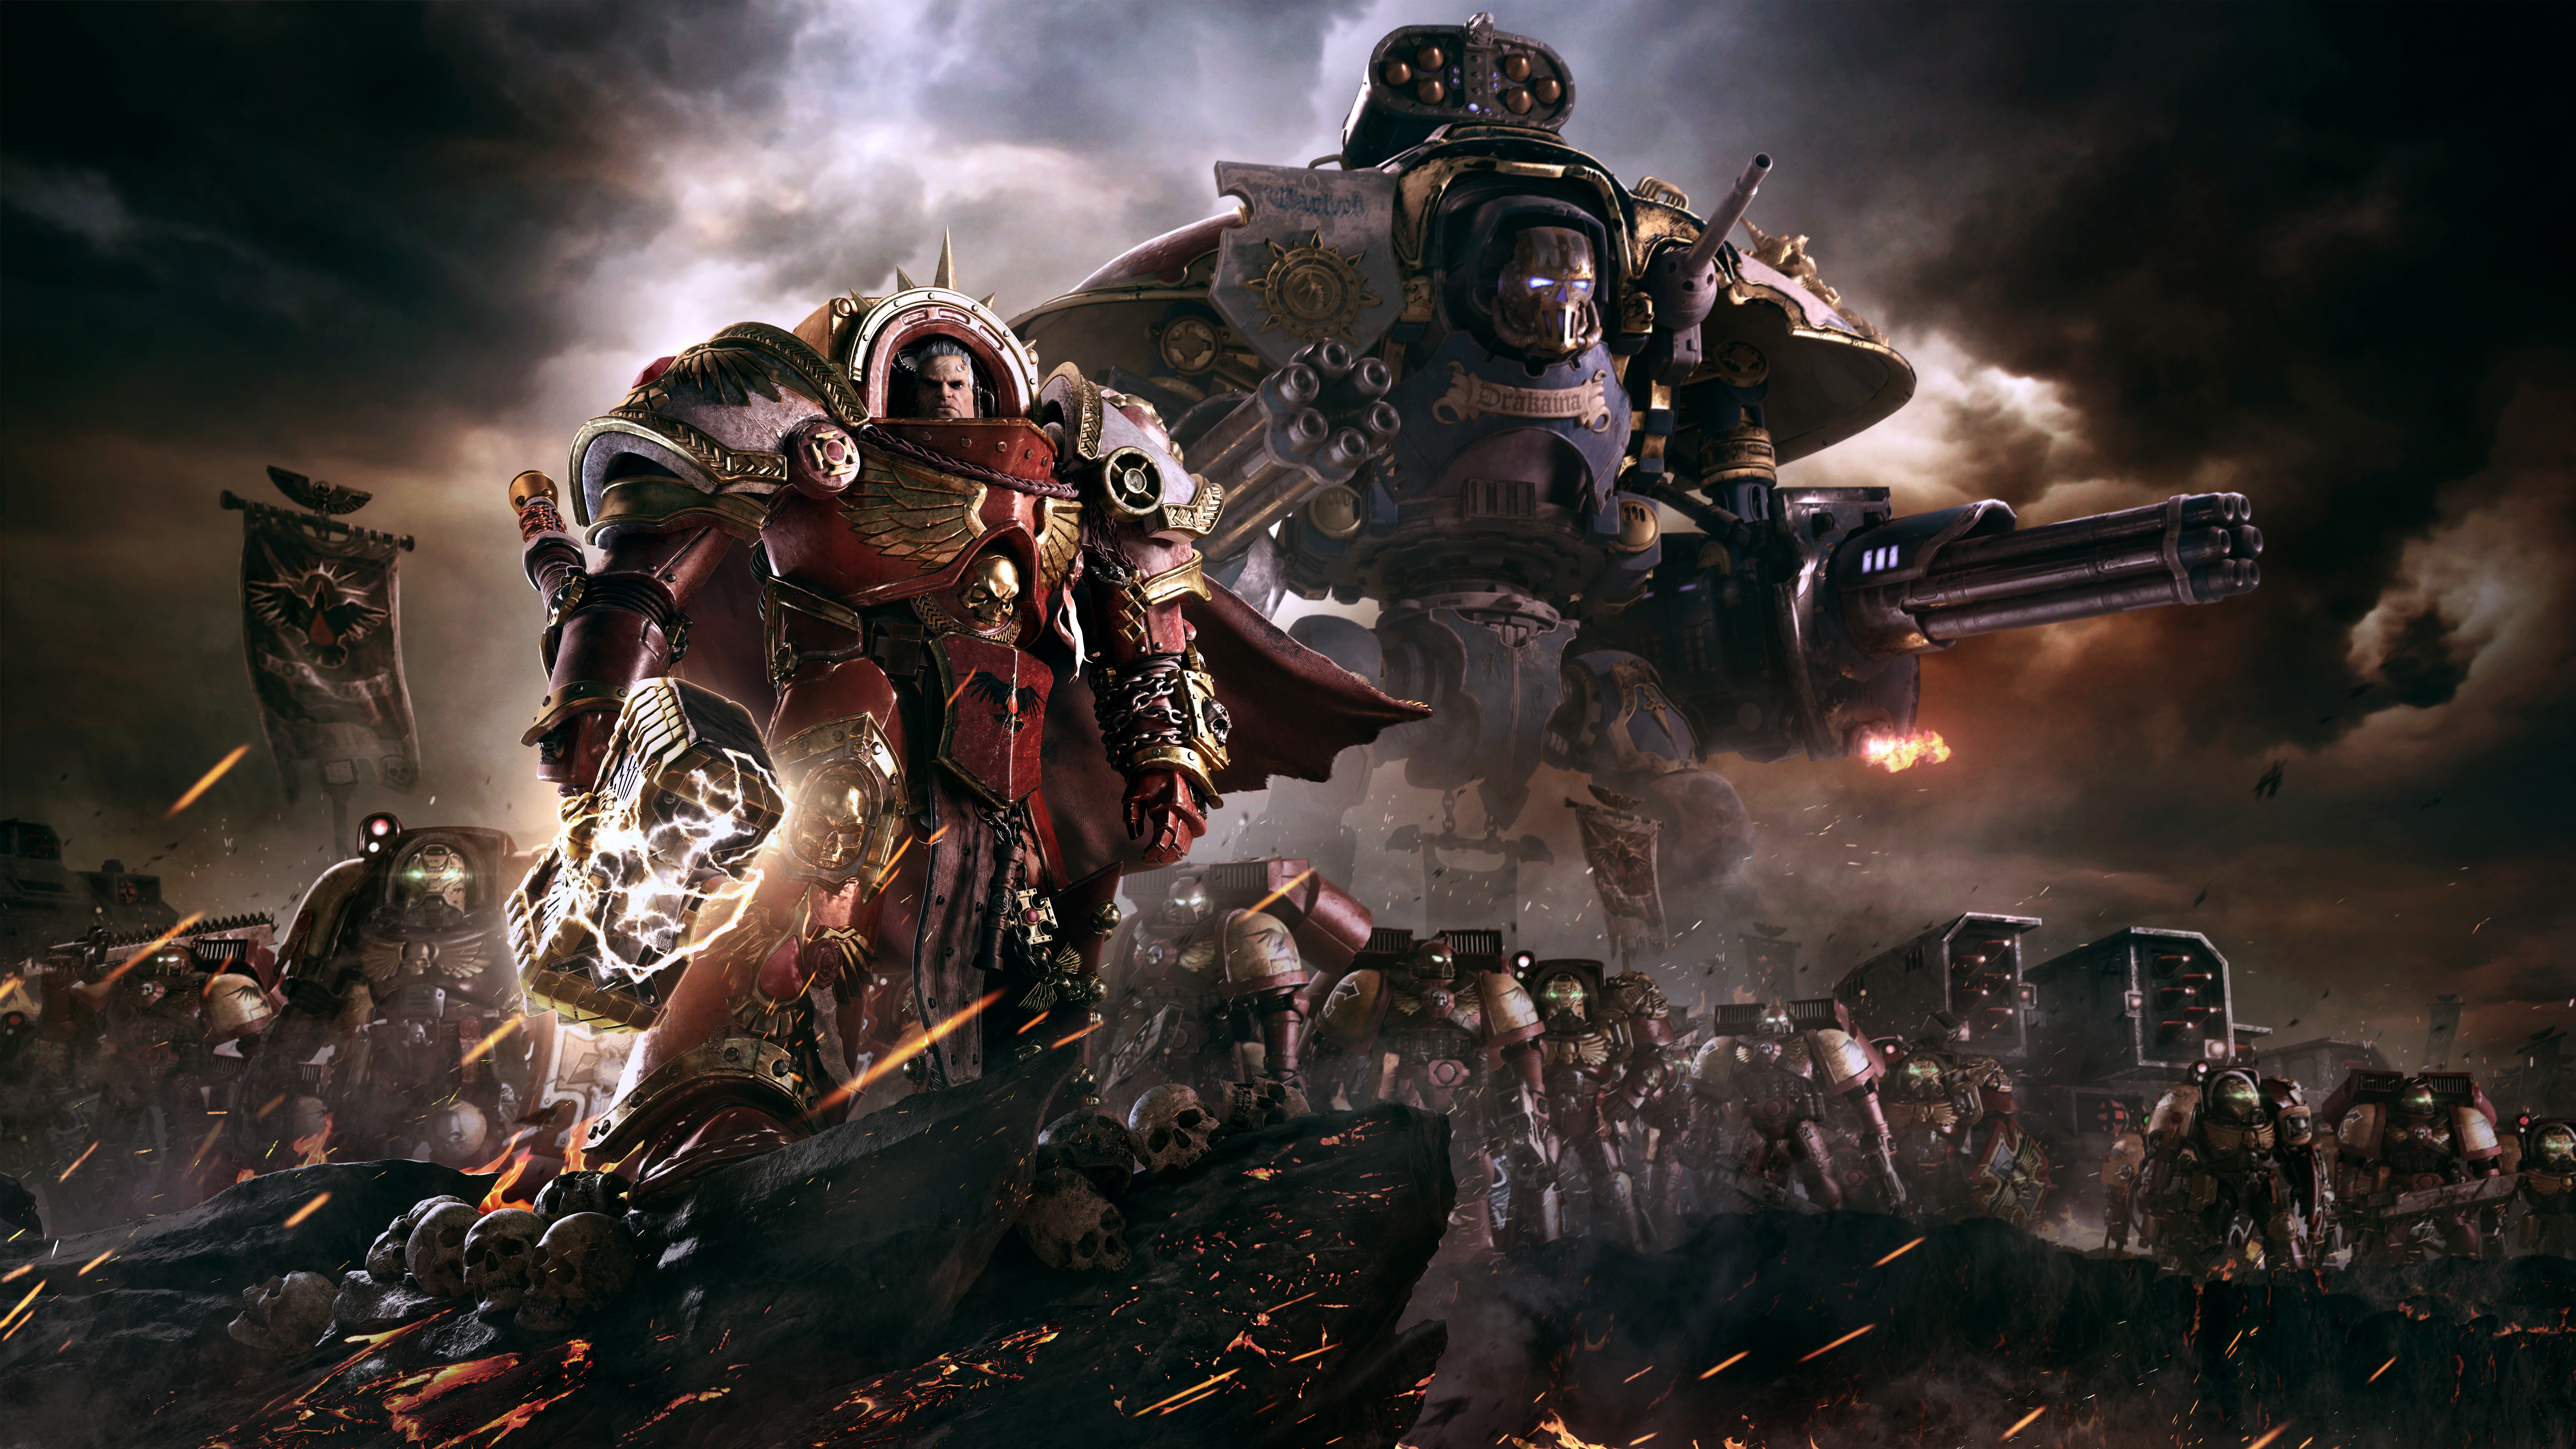 warhammer 40k hd wallpapers and background images - stmed